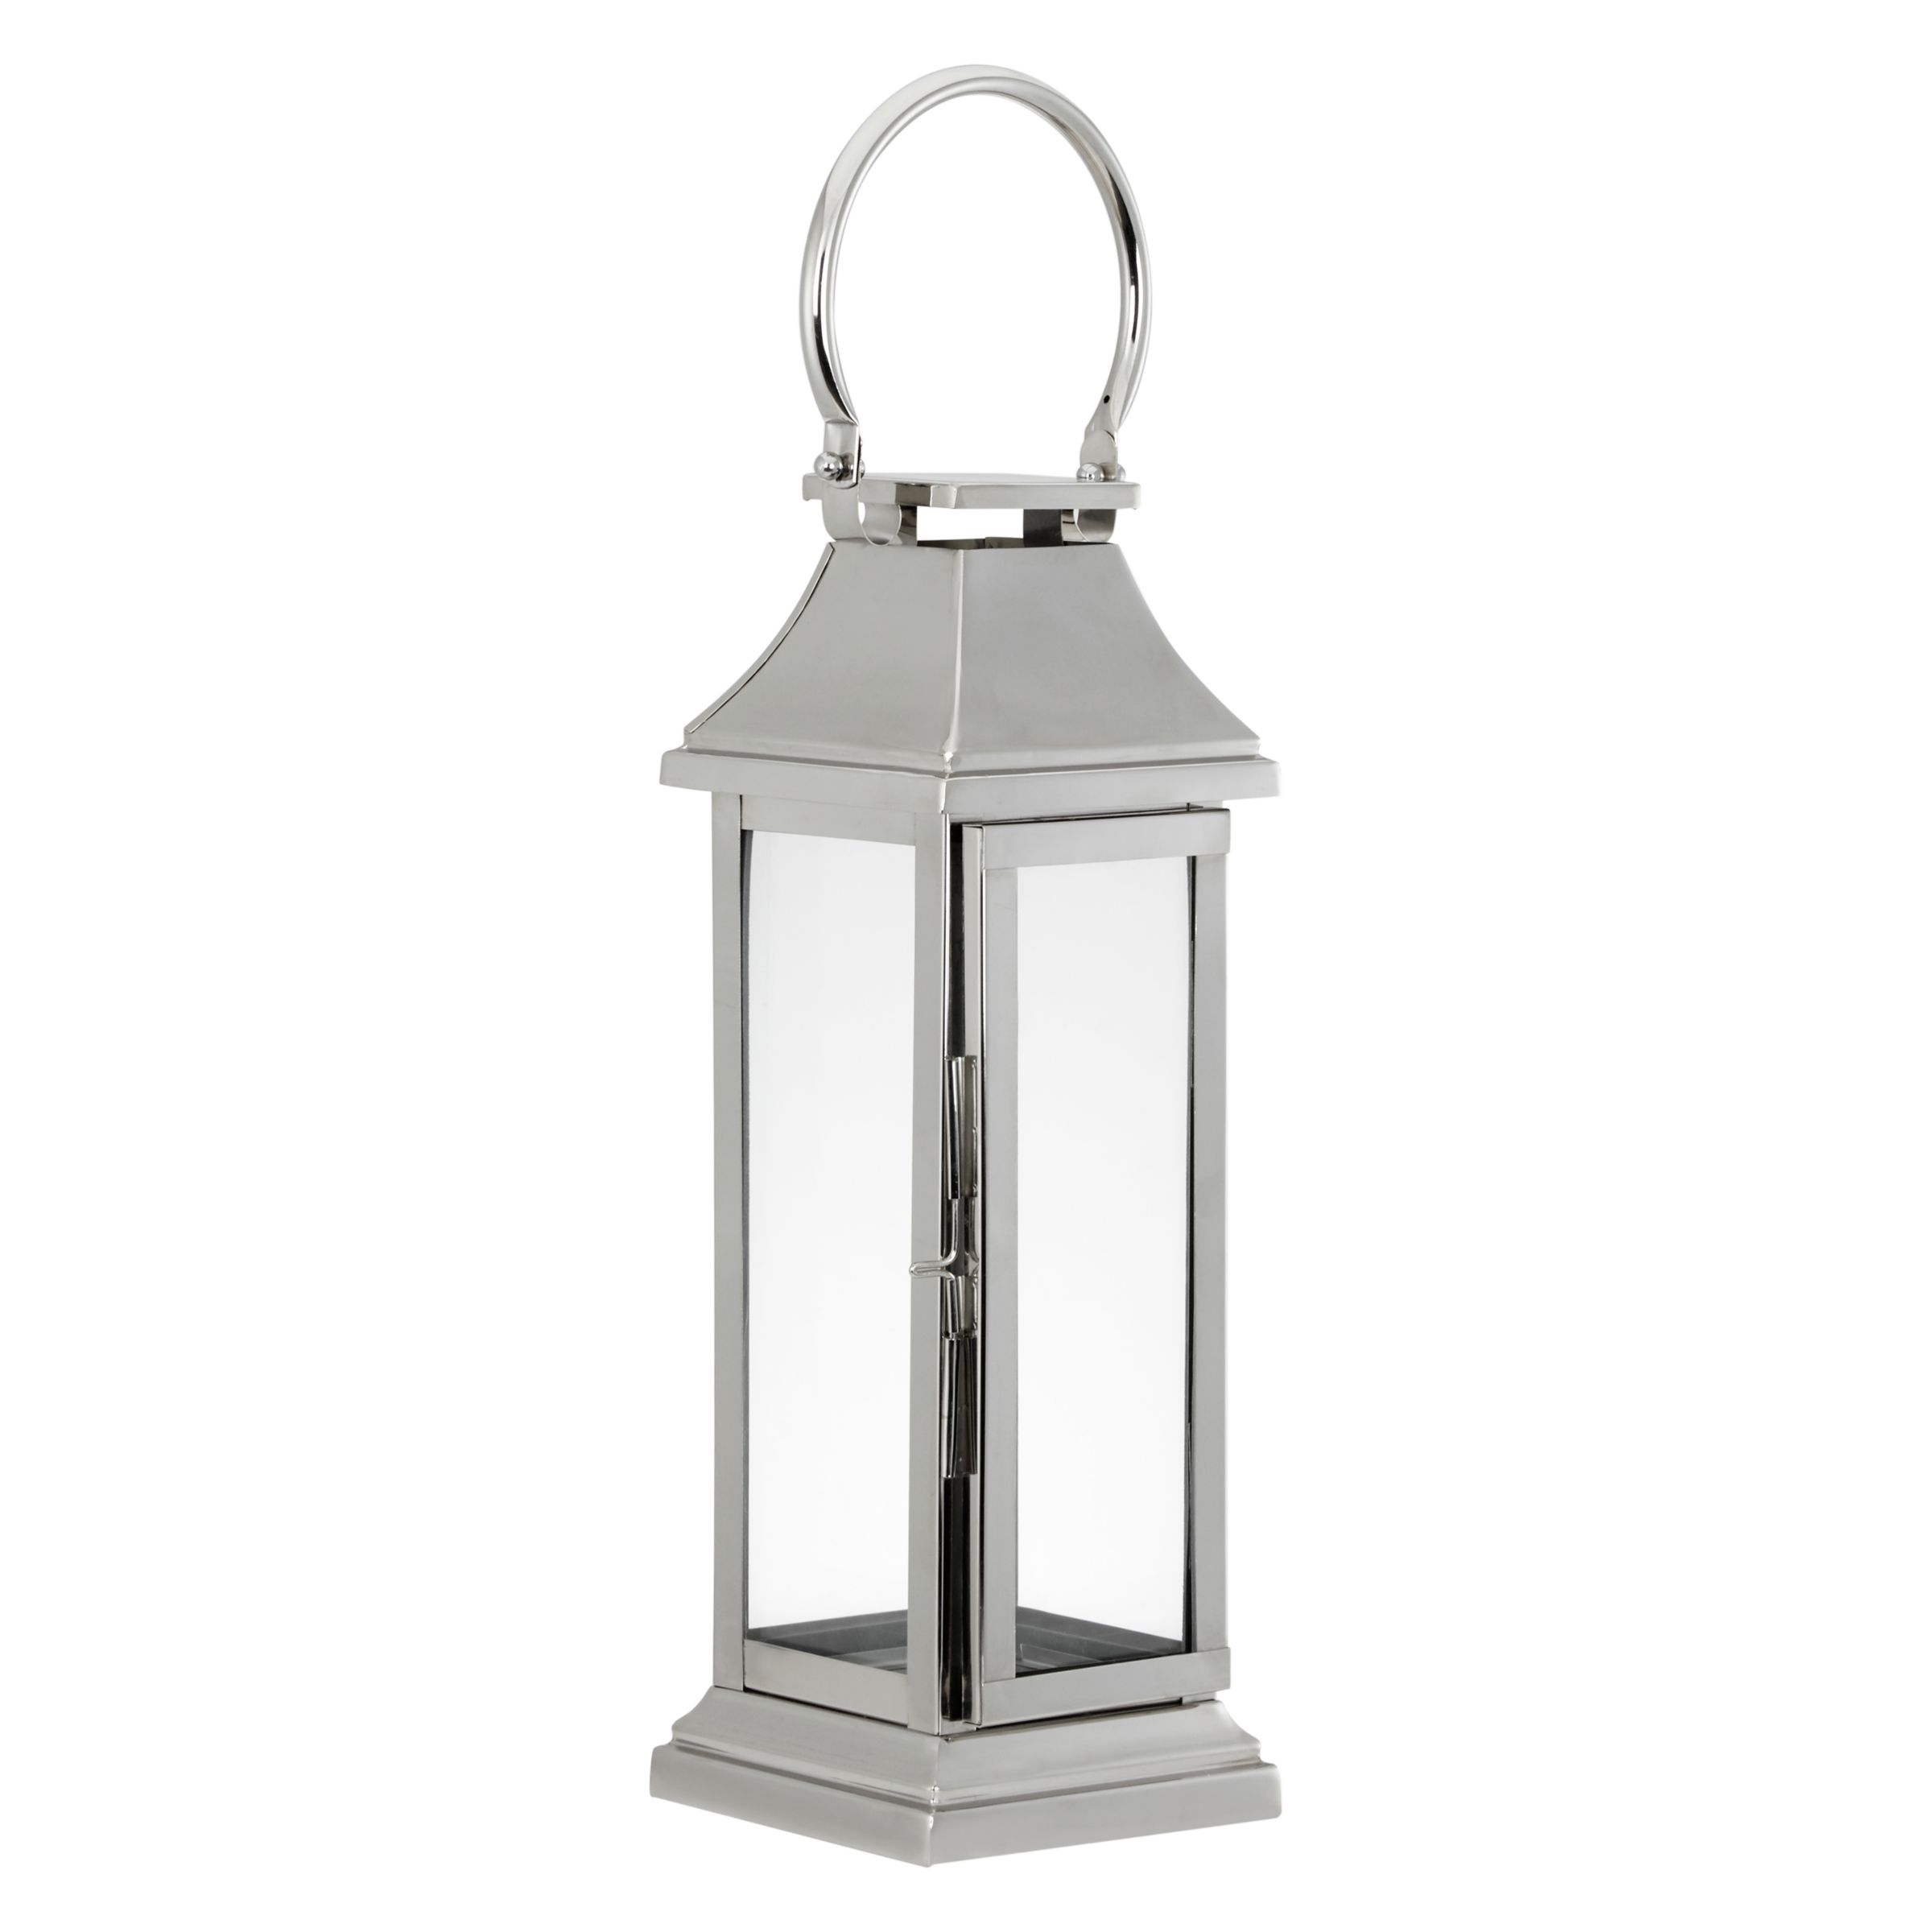 Culinary Concepts Culinary Concepts Station Lantern, Large